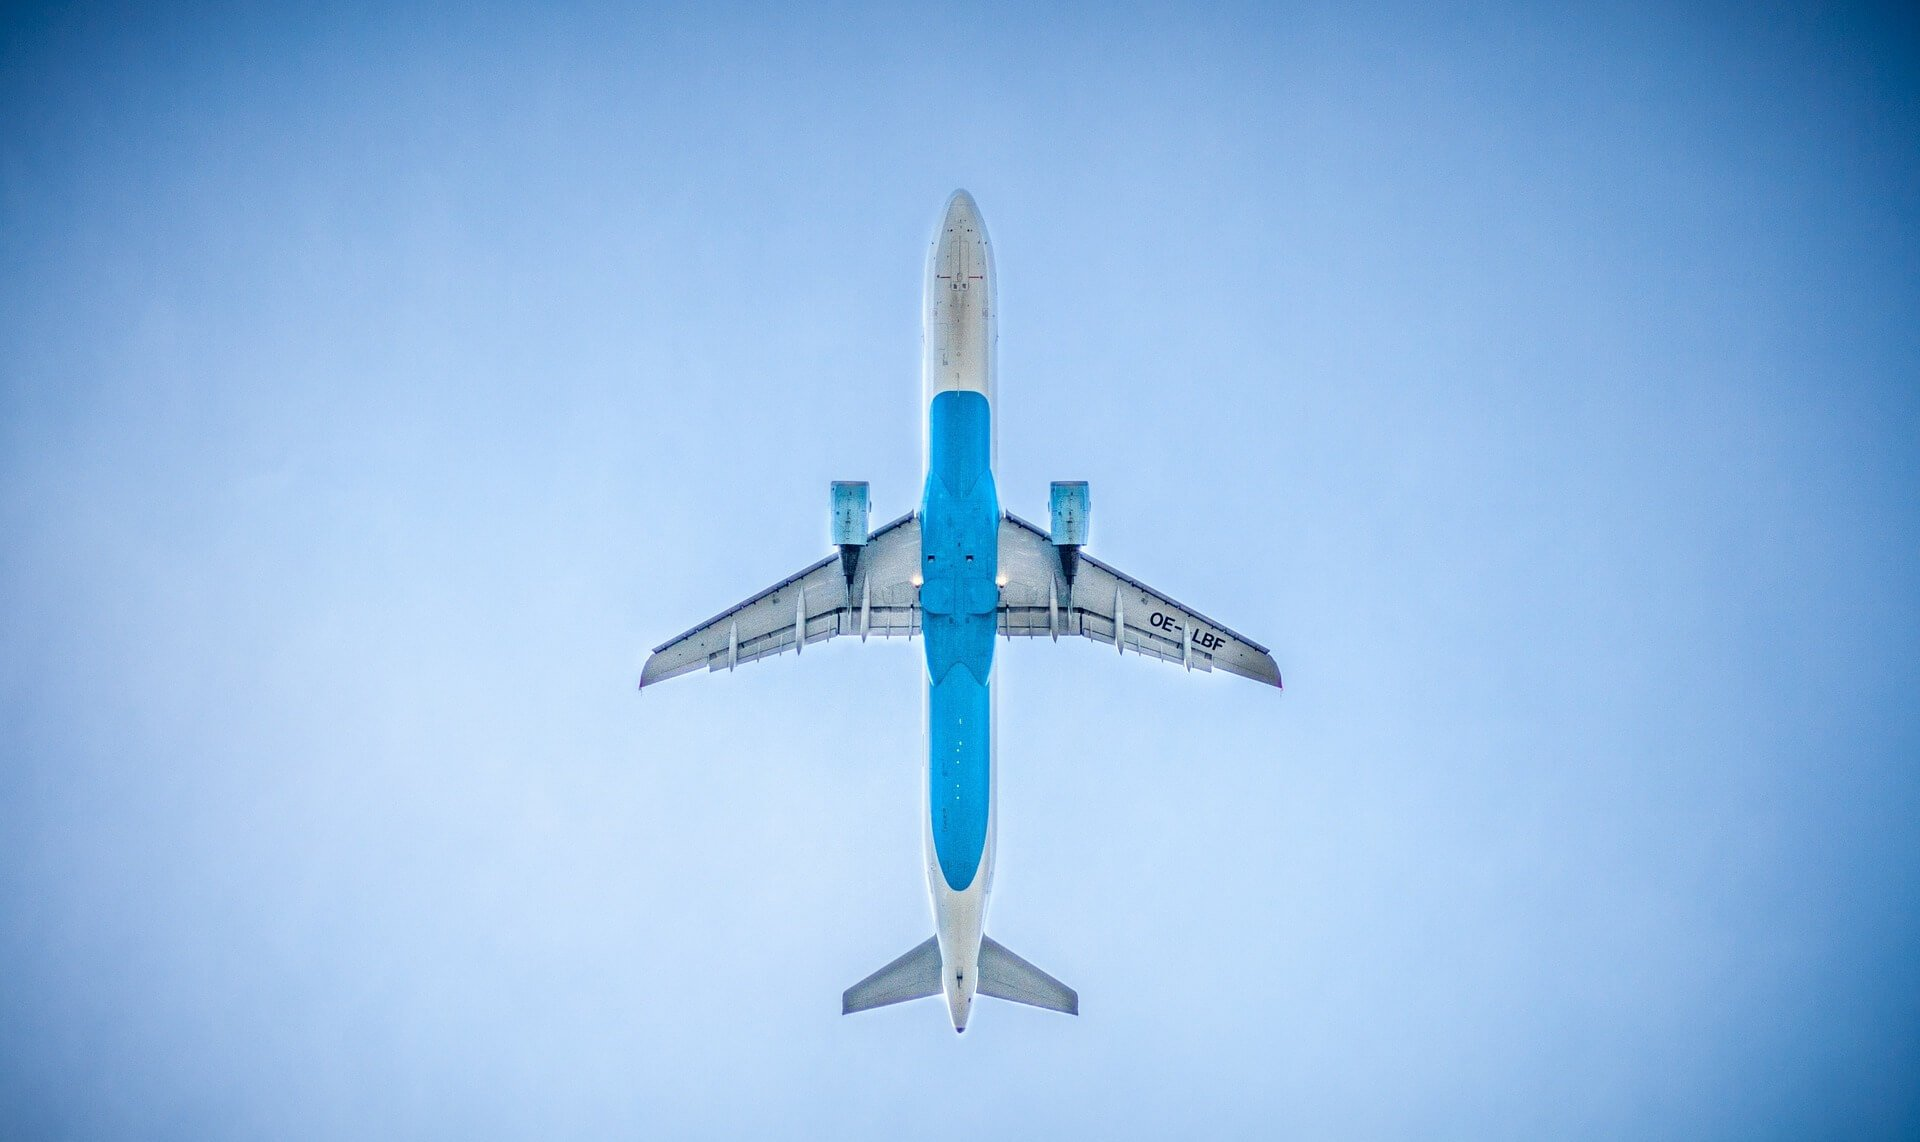 How to Find Airline Mistake Fares (& Get Ridiculously Cheap Flights